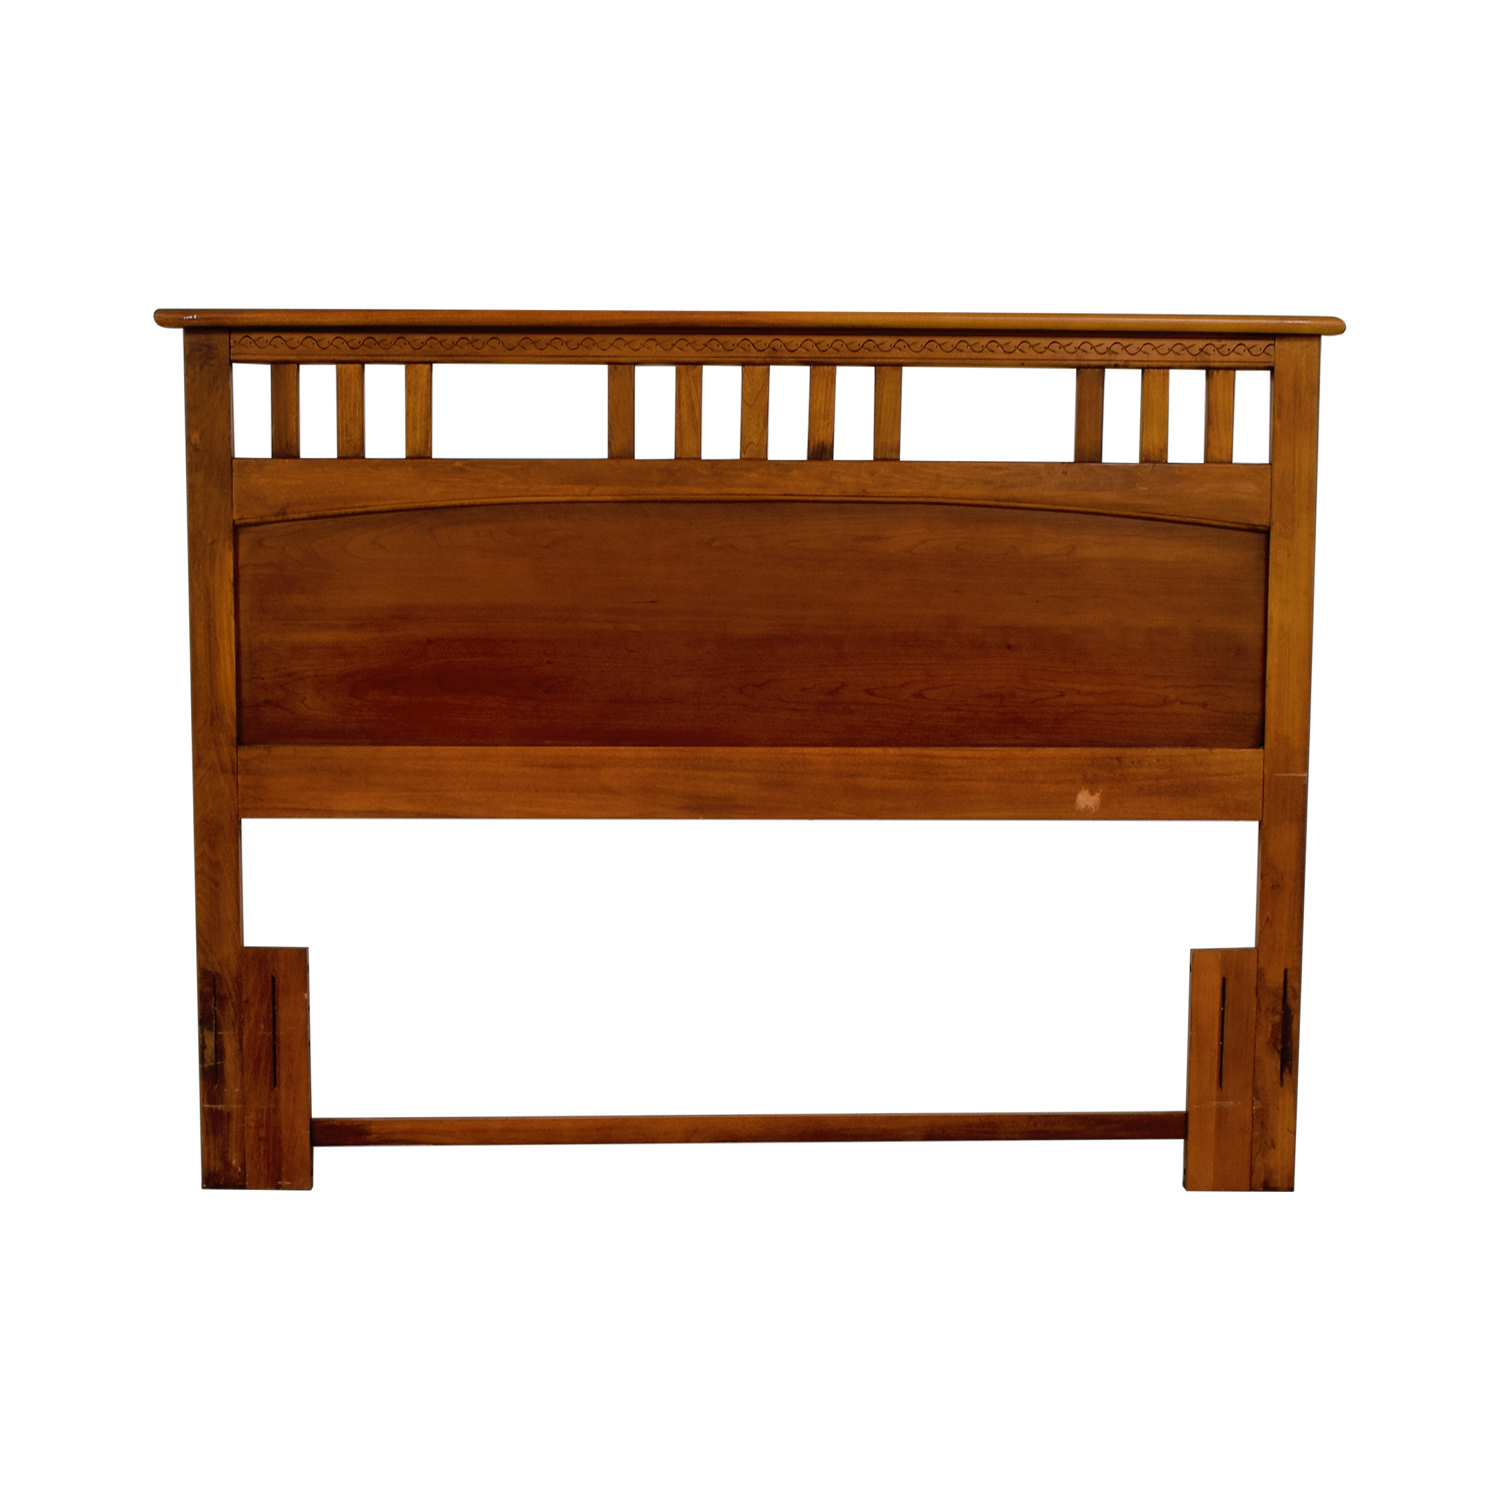 Vaughan Furniture Company Vaughan Furniture Company Wooden Queen Headboard second hand